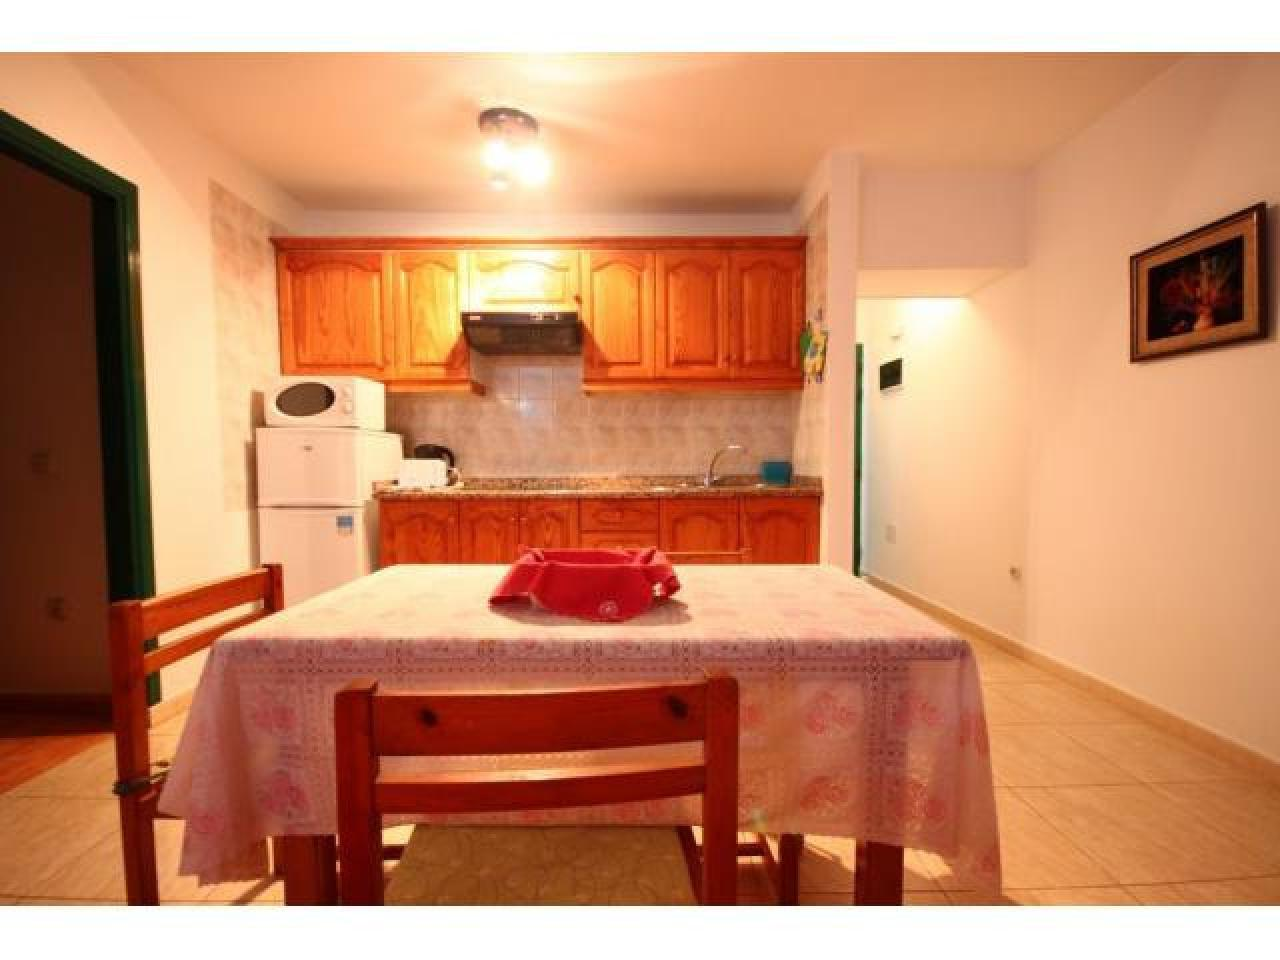 Apartment in Tenerife for sale » #373 - 1